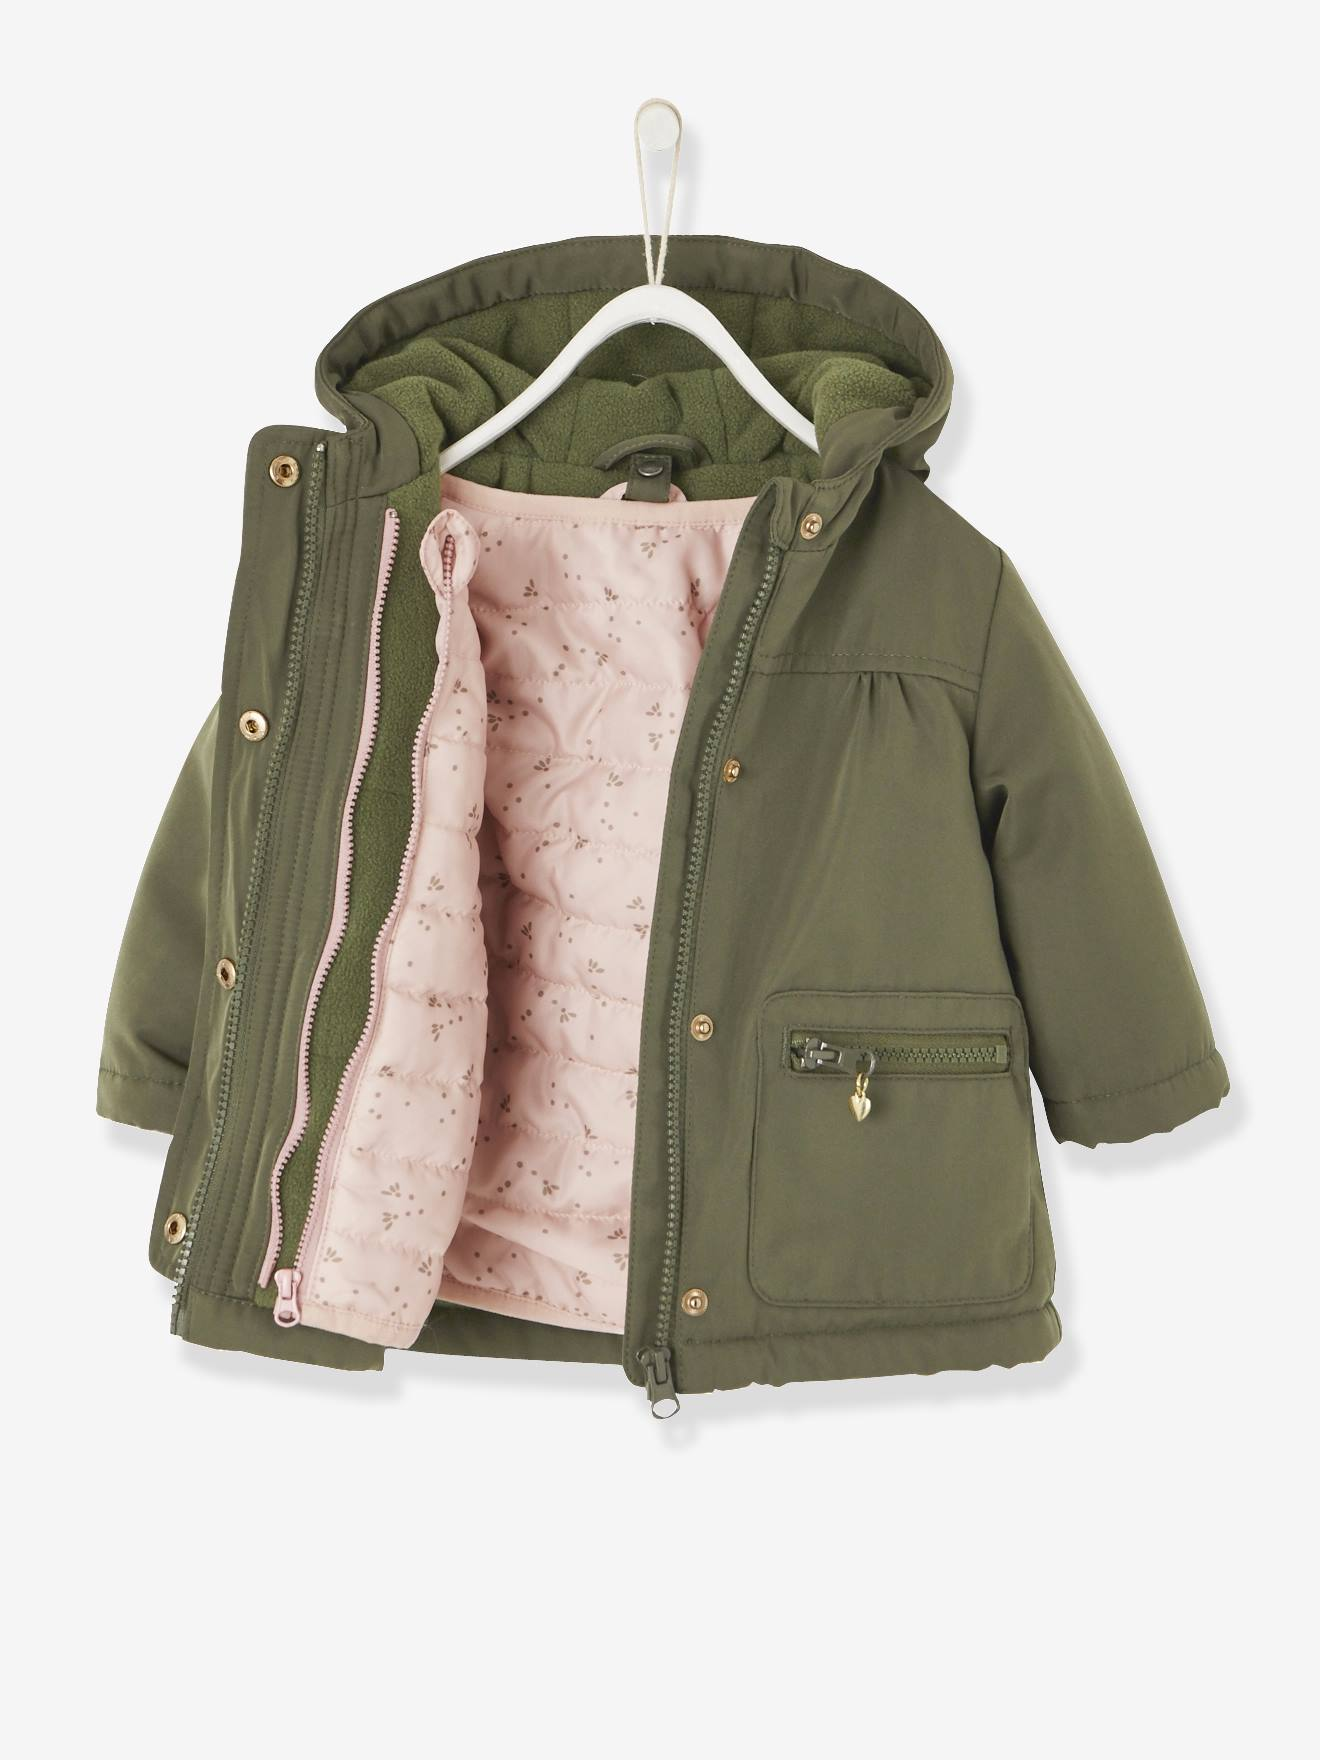 8e528debb 3-in-1 Parka with Removable Jacket, for Baby Girls - green dark solid, Baby